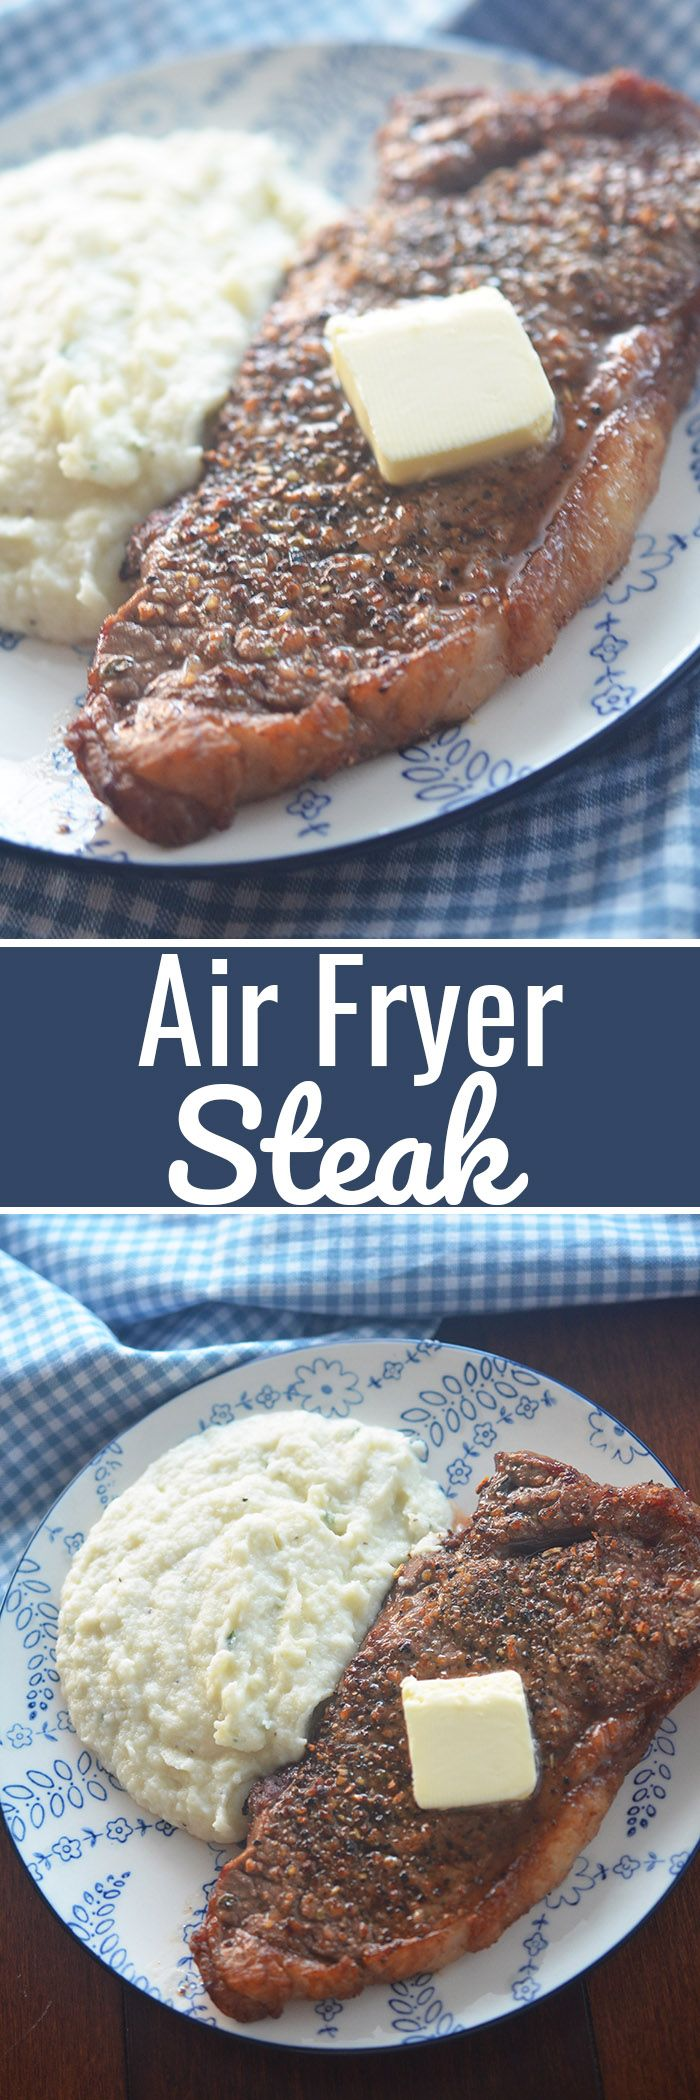 Air Fryer Steak - Recipe Diaries #steak #airfryer #airfryerrecipes #lowcarb